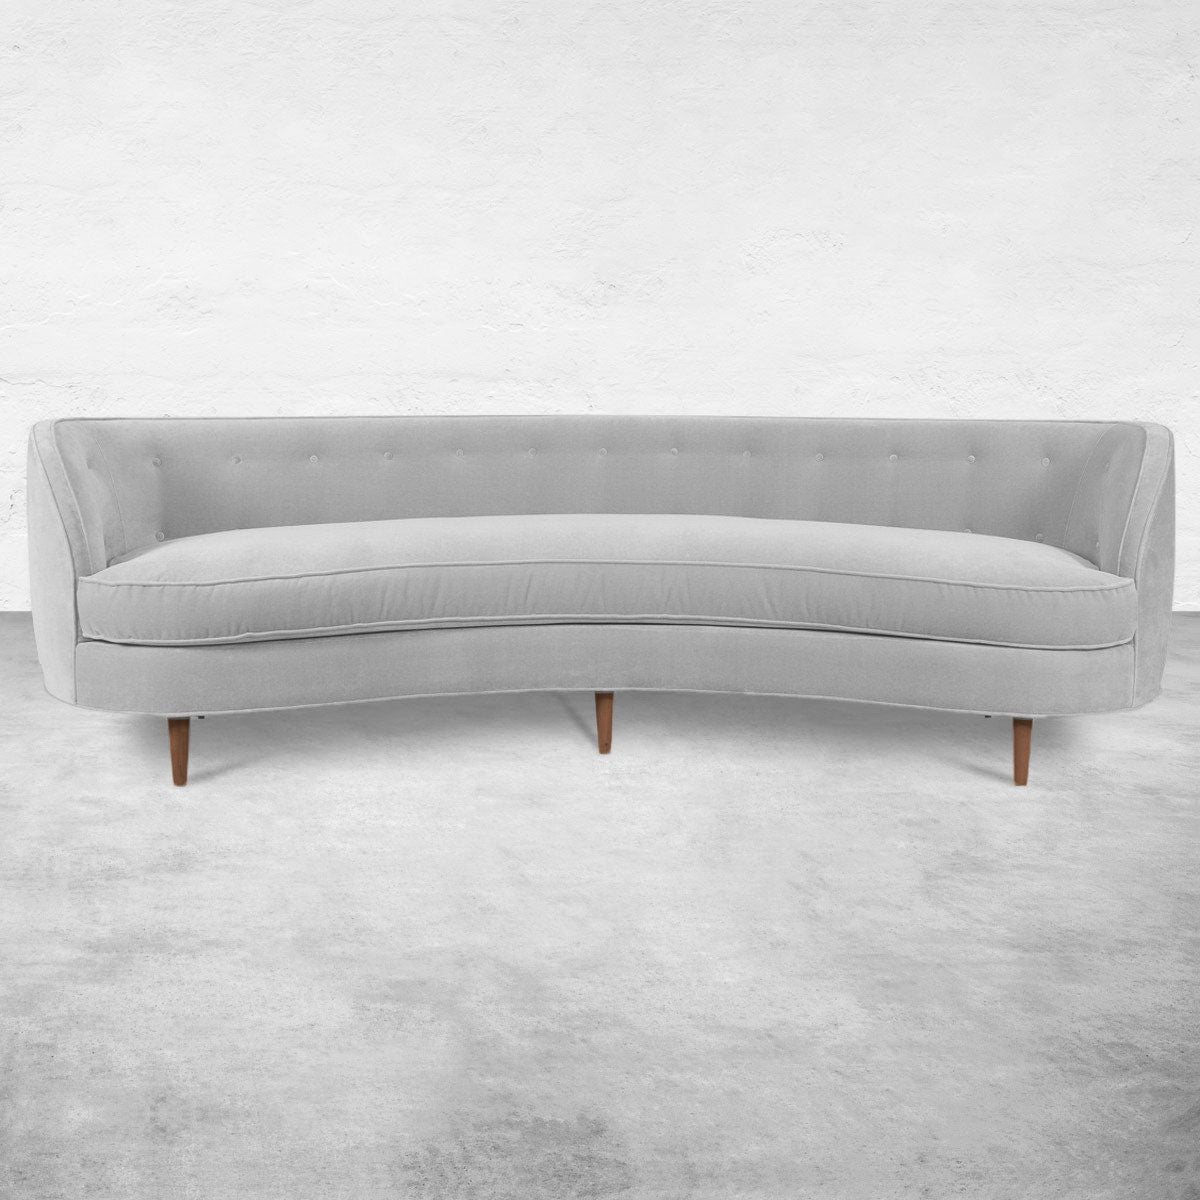 St. Tropez 2 Curved Sofa in Velvet